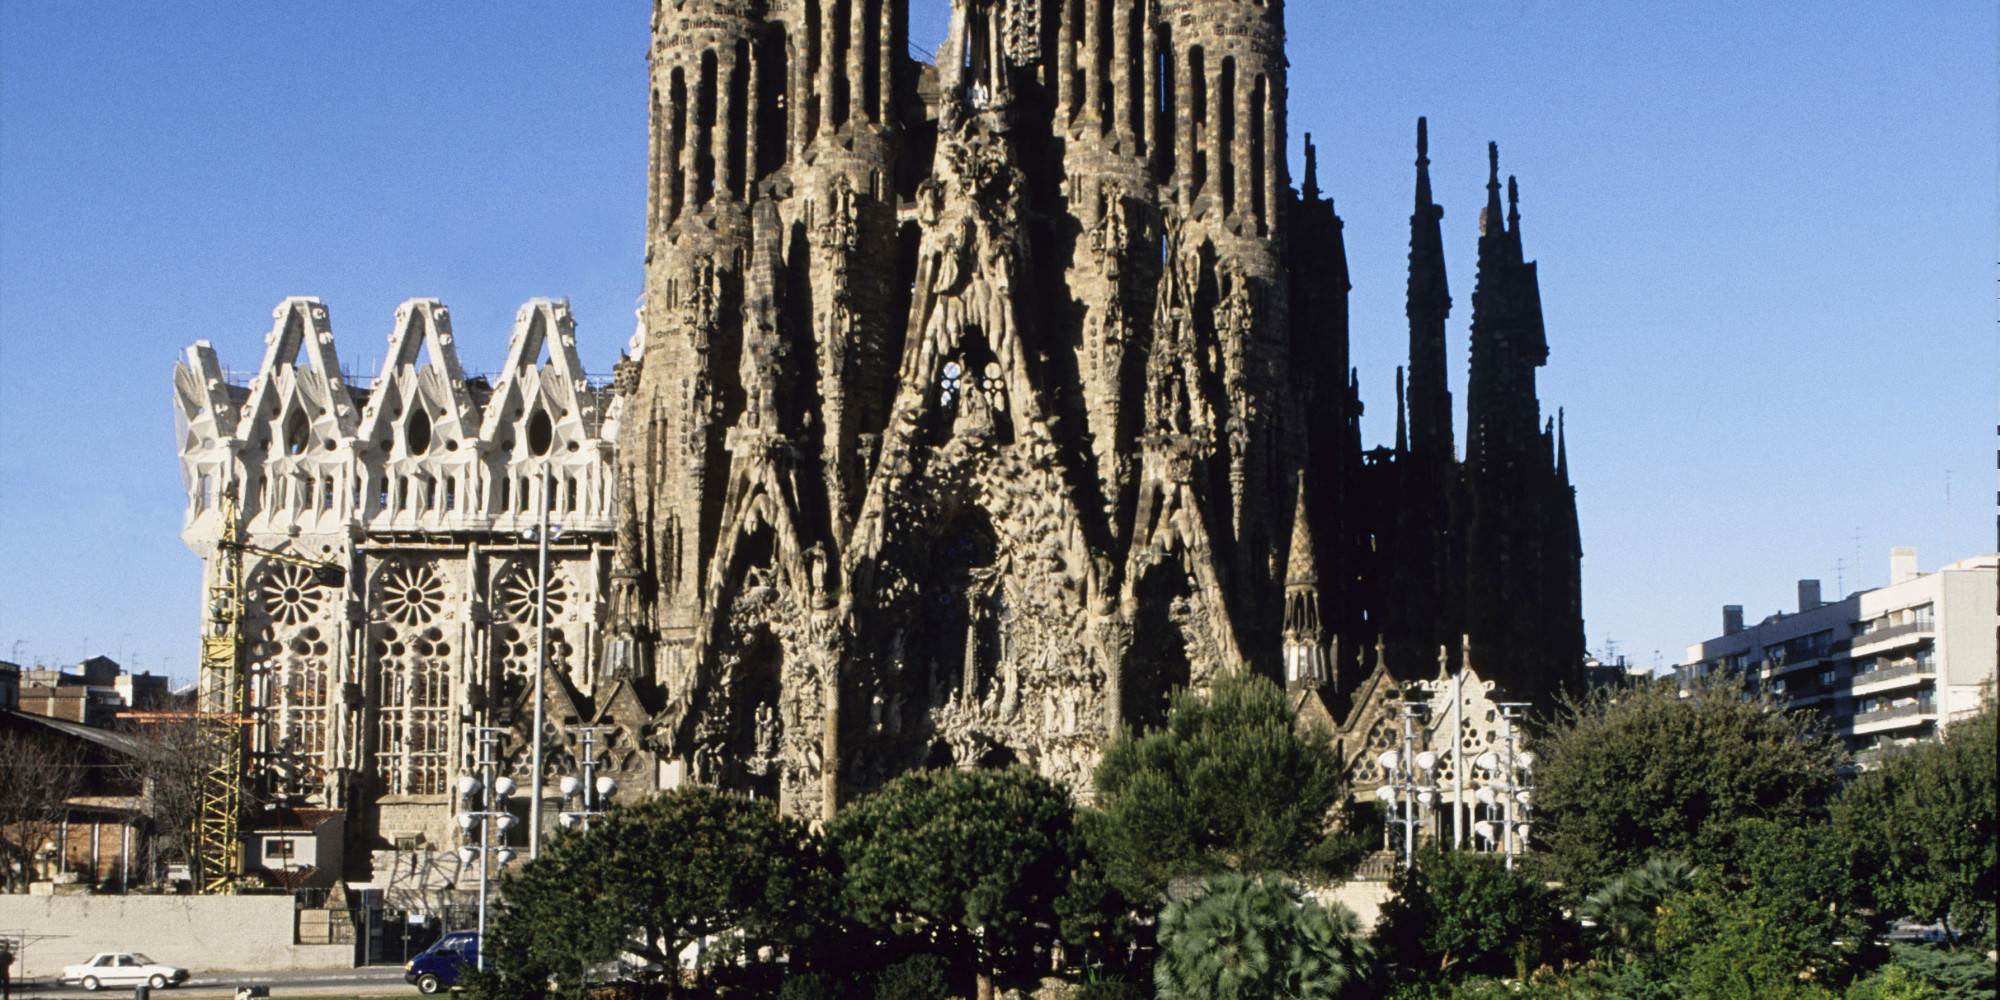 10 Architectural Landmarks You Have To Visit Before You